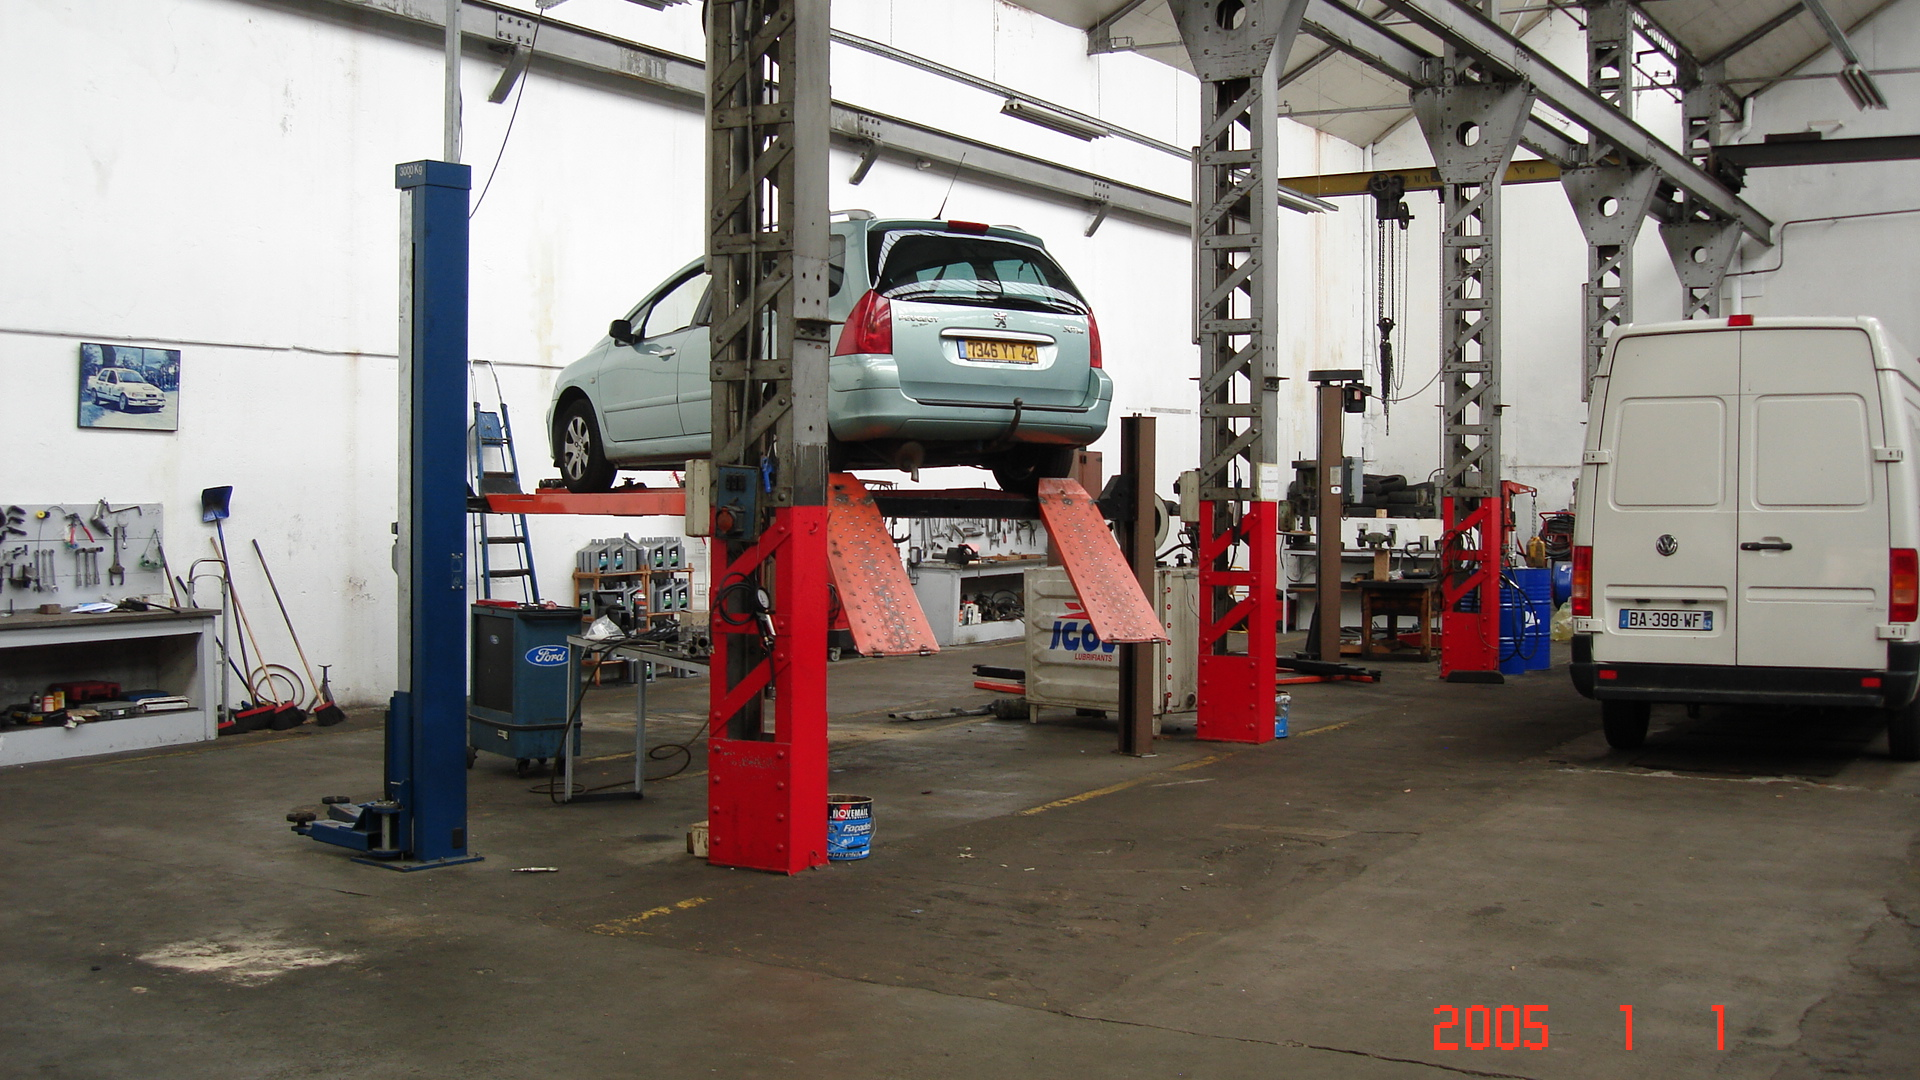 Comment trouver un bon garage pr s de chez soi voiture for Garage villemomble automobile